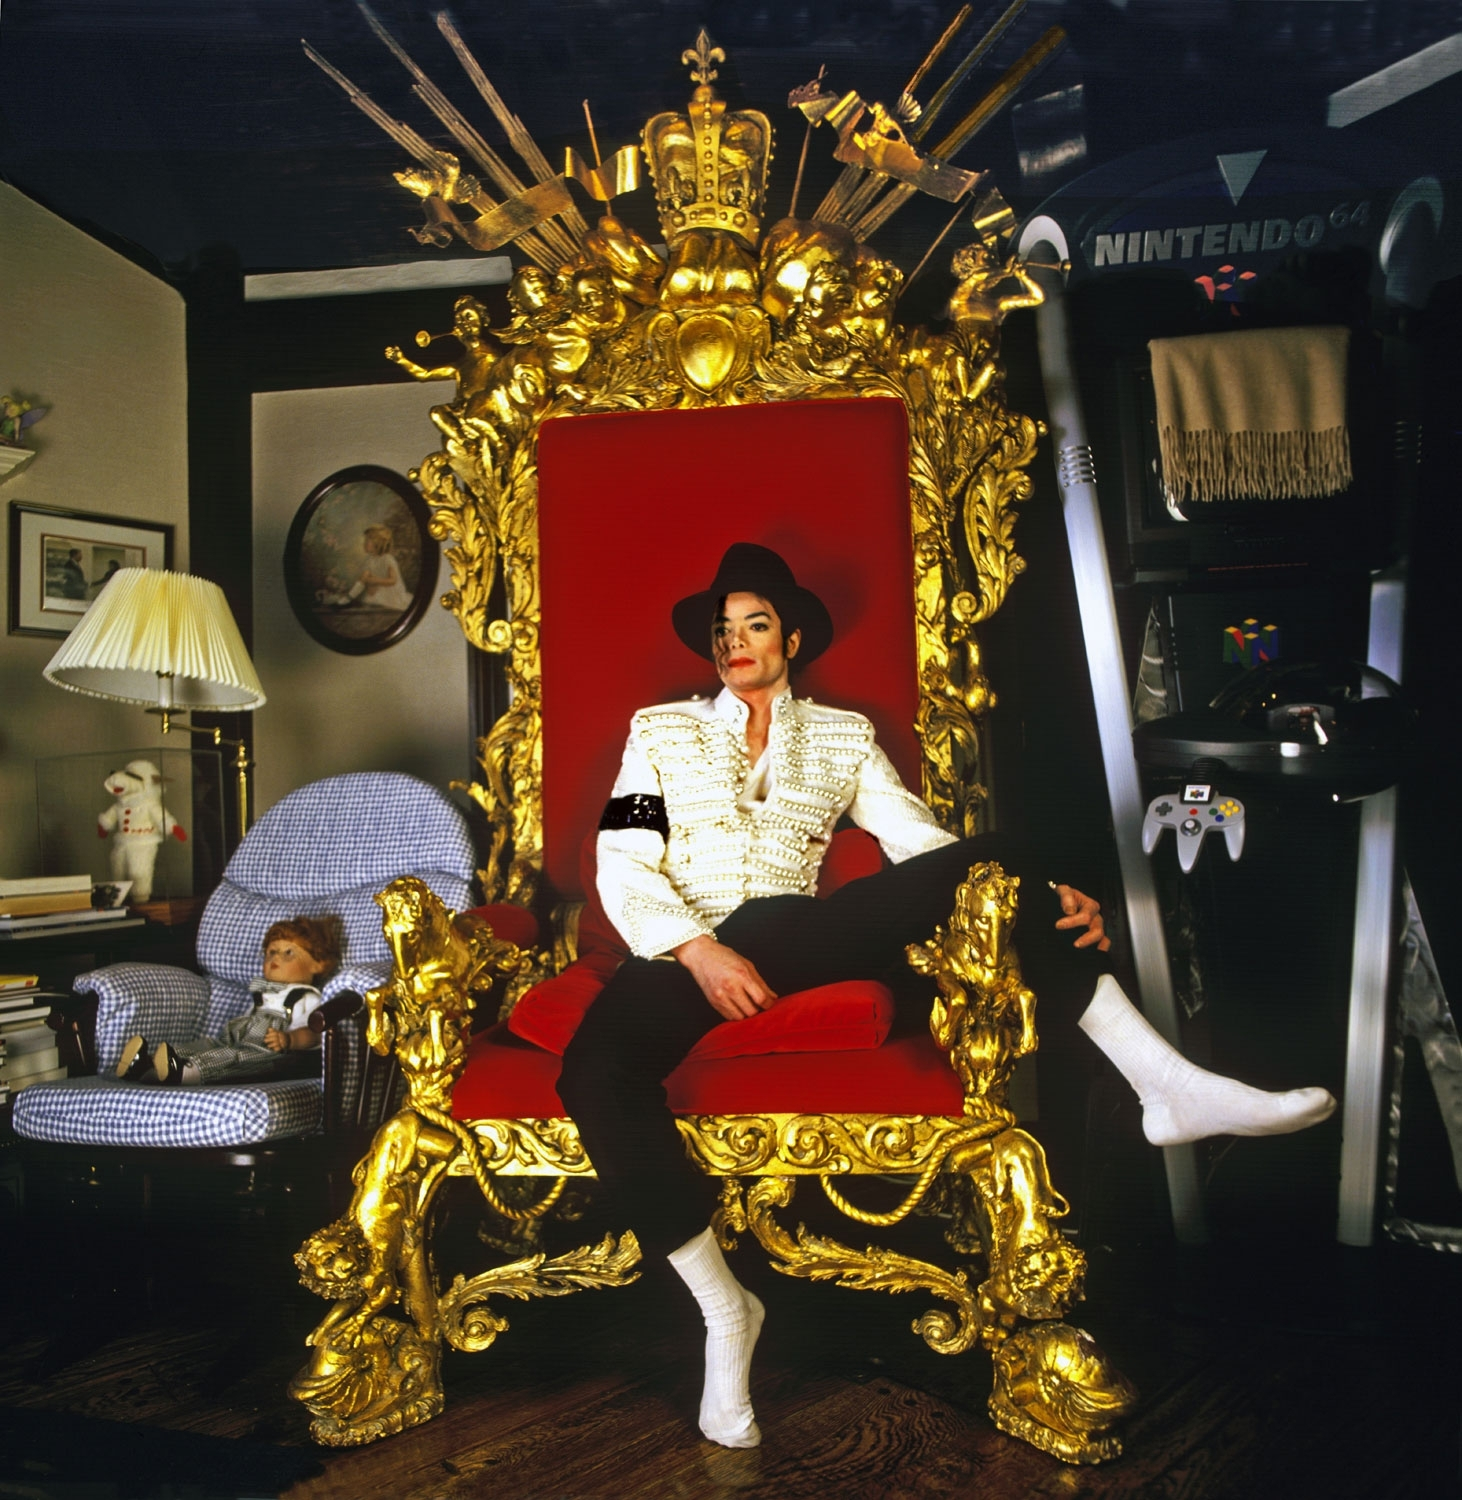 Michael Jackson on Throne (King of Pop)